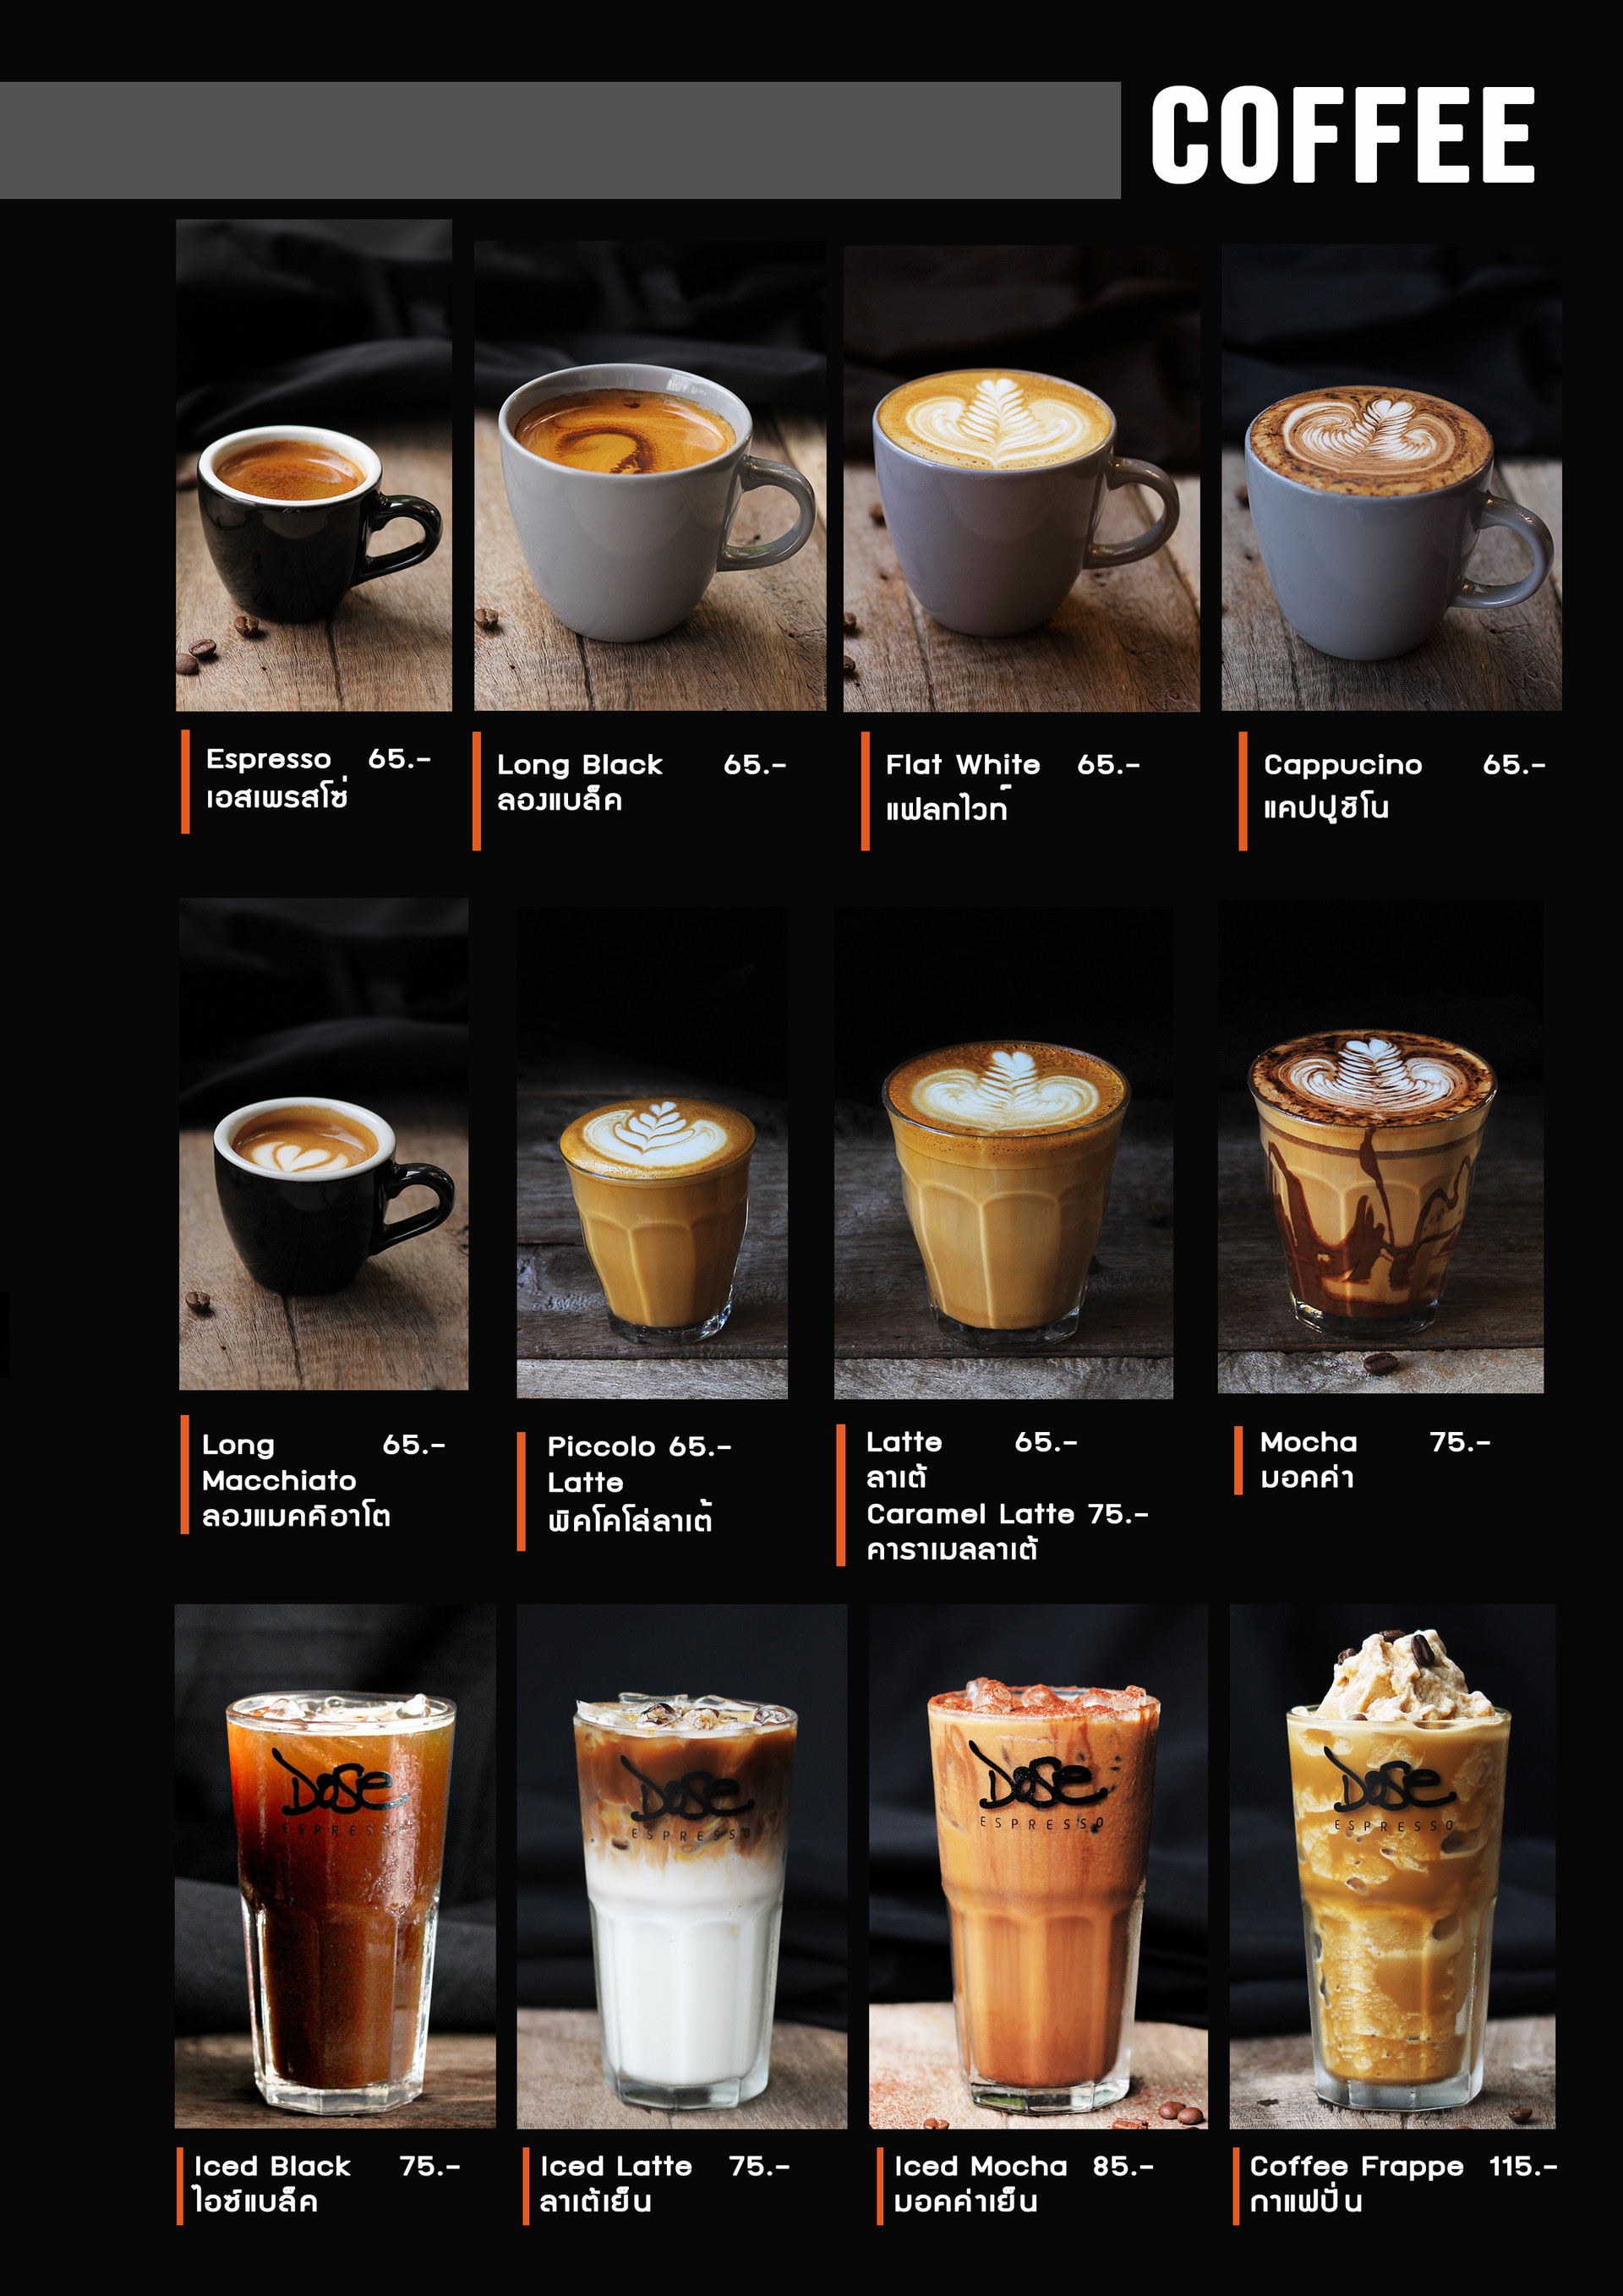 2 Hot and Cold Coffee 2.jpg